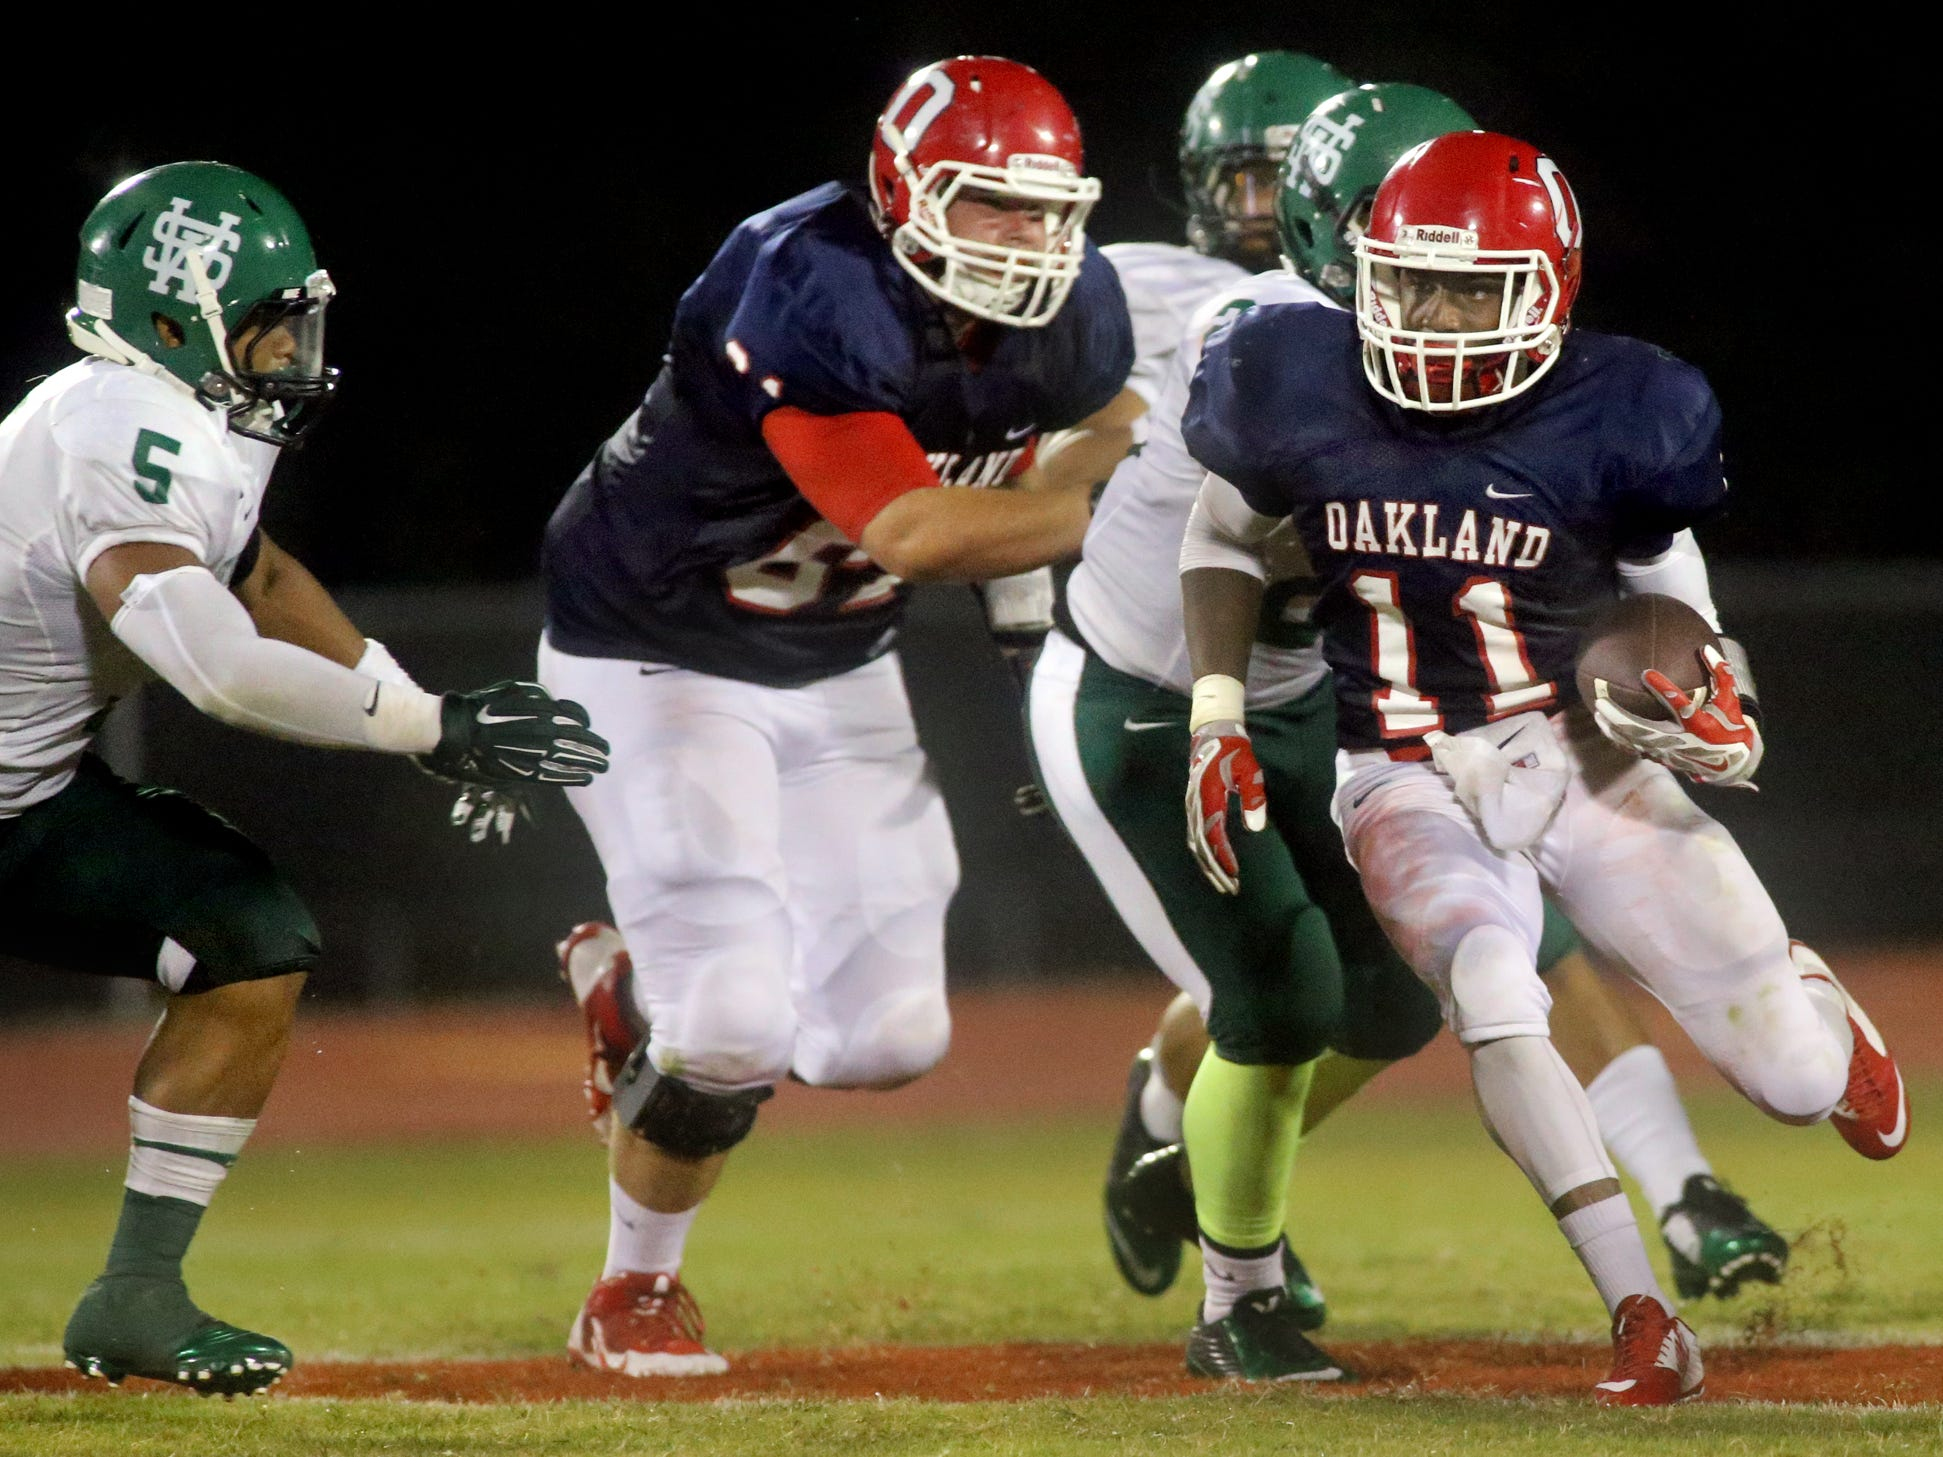 Oakland's Josh Cunningham runs the ball in the first half of the game against White Station at Oakland, on Friday, August 2, 2014.